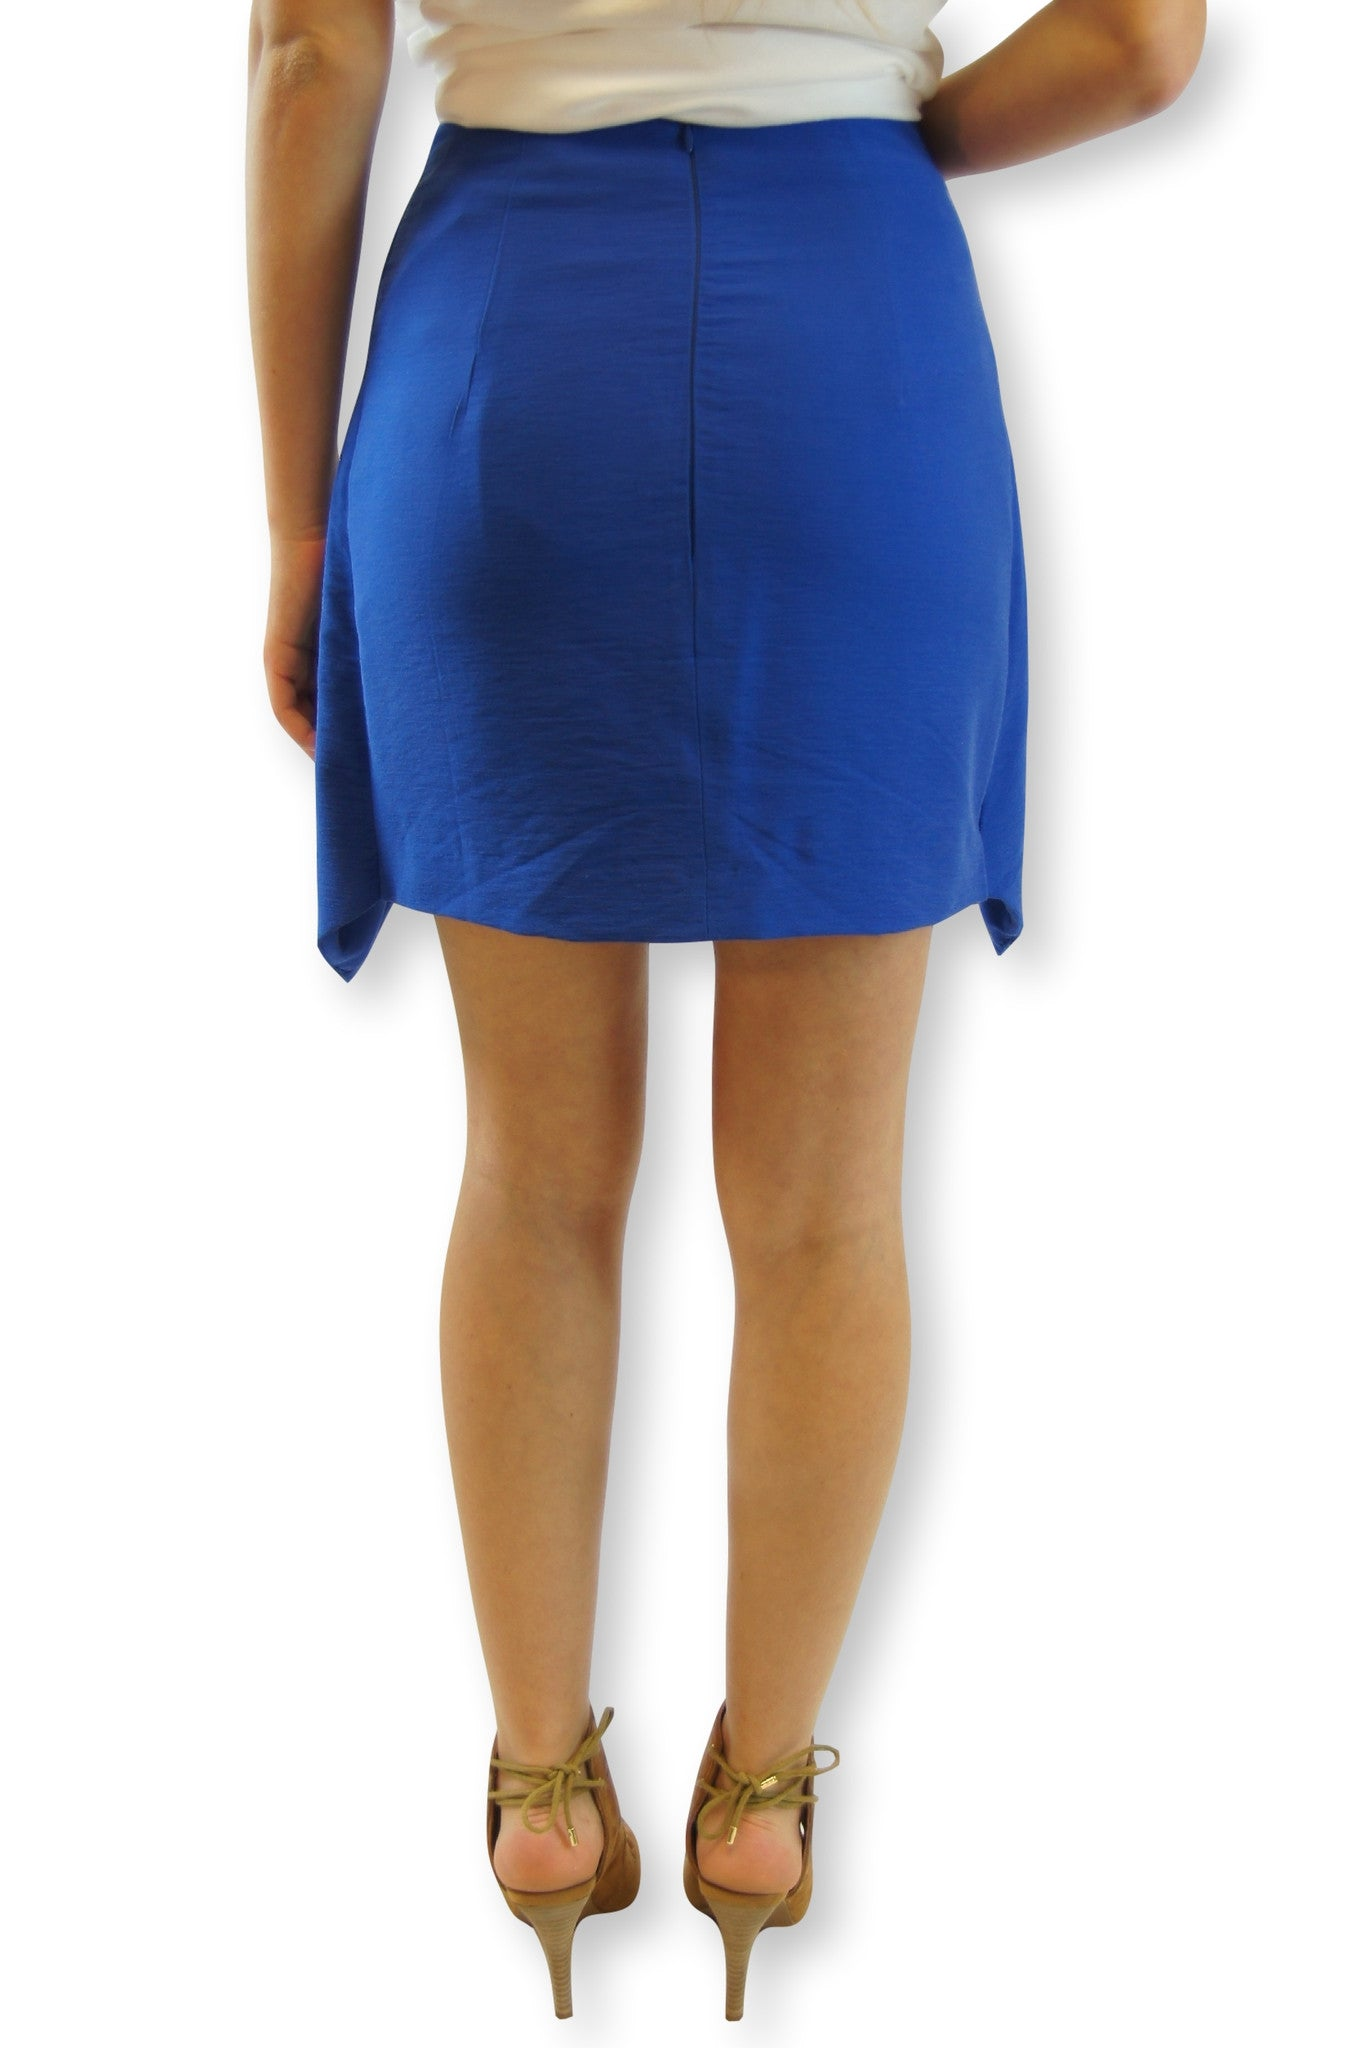 finders keepers | basic instinct skirt - klōthe - 3